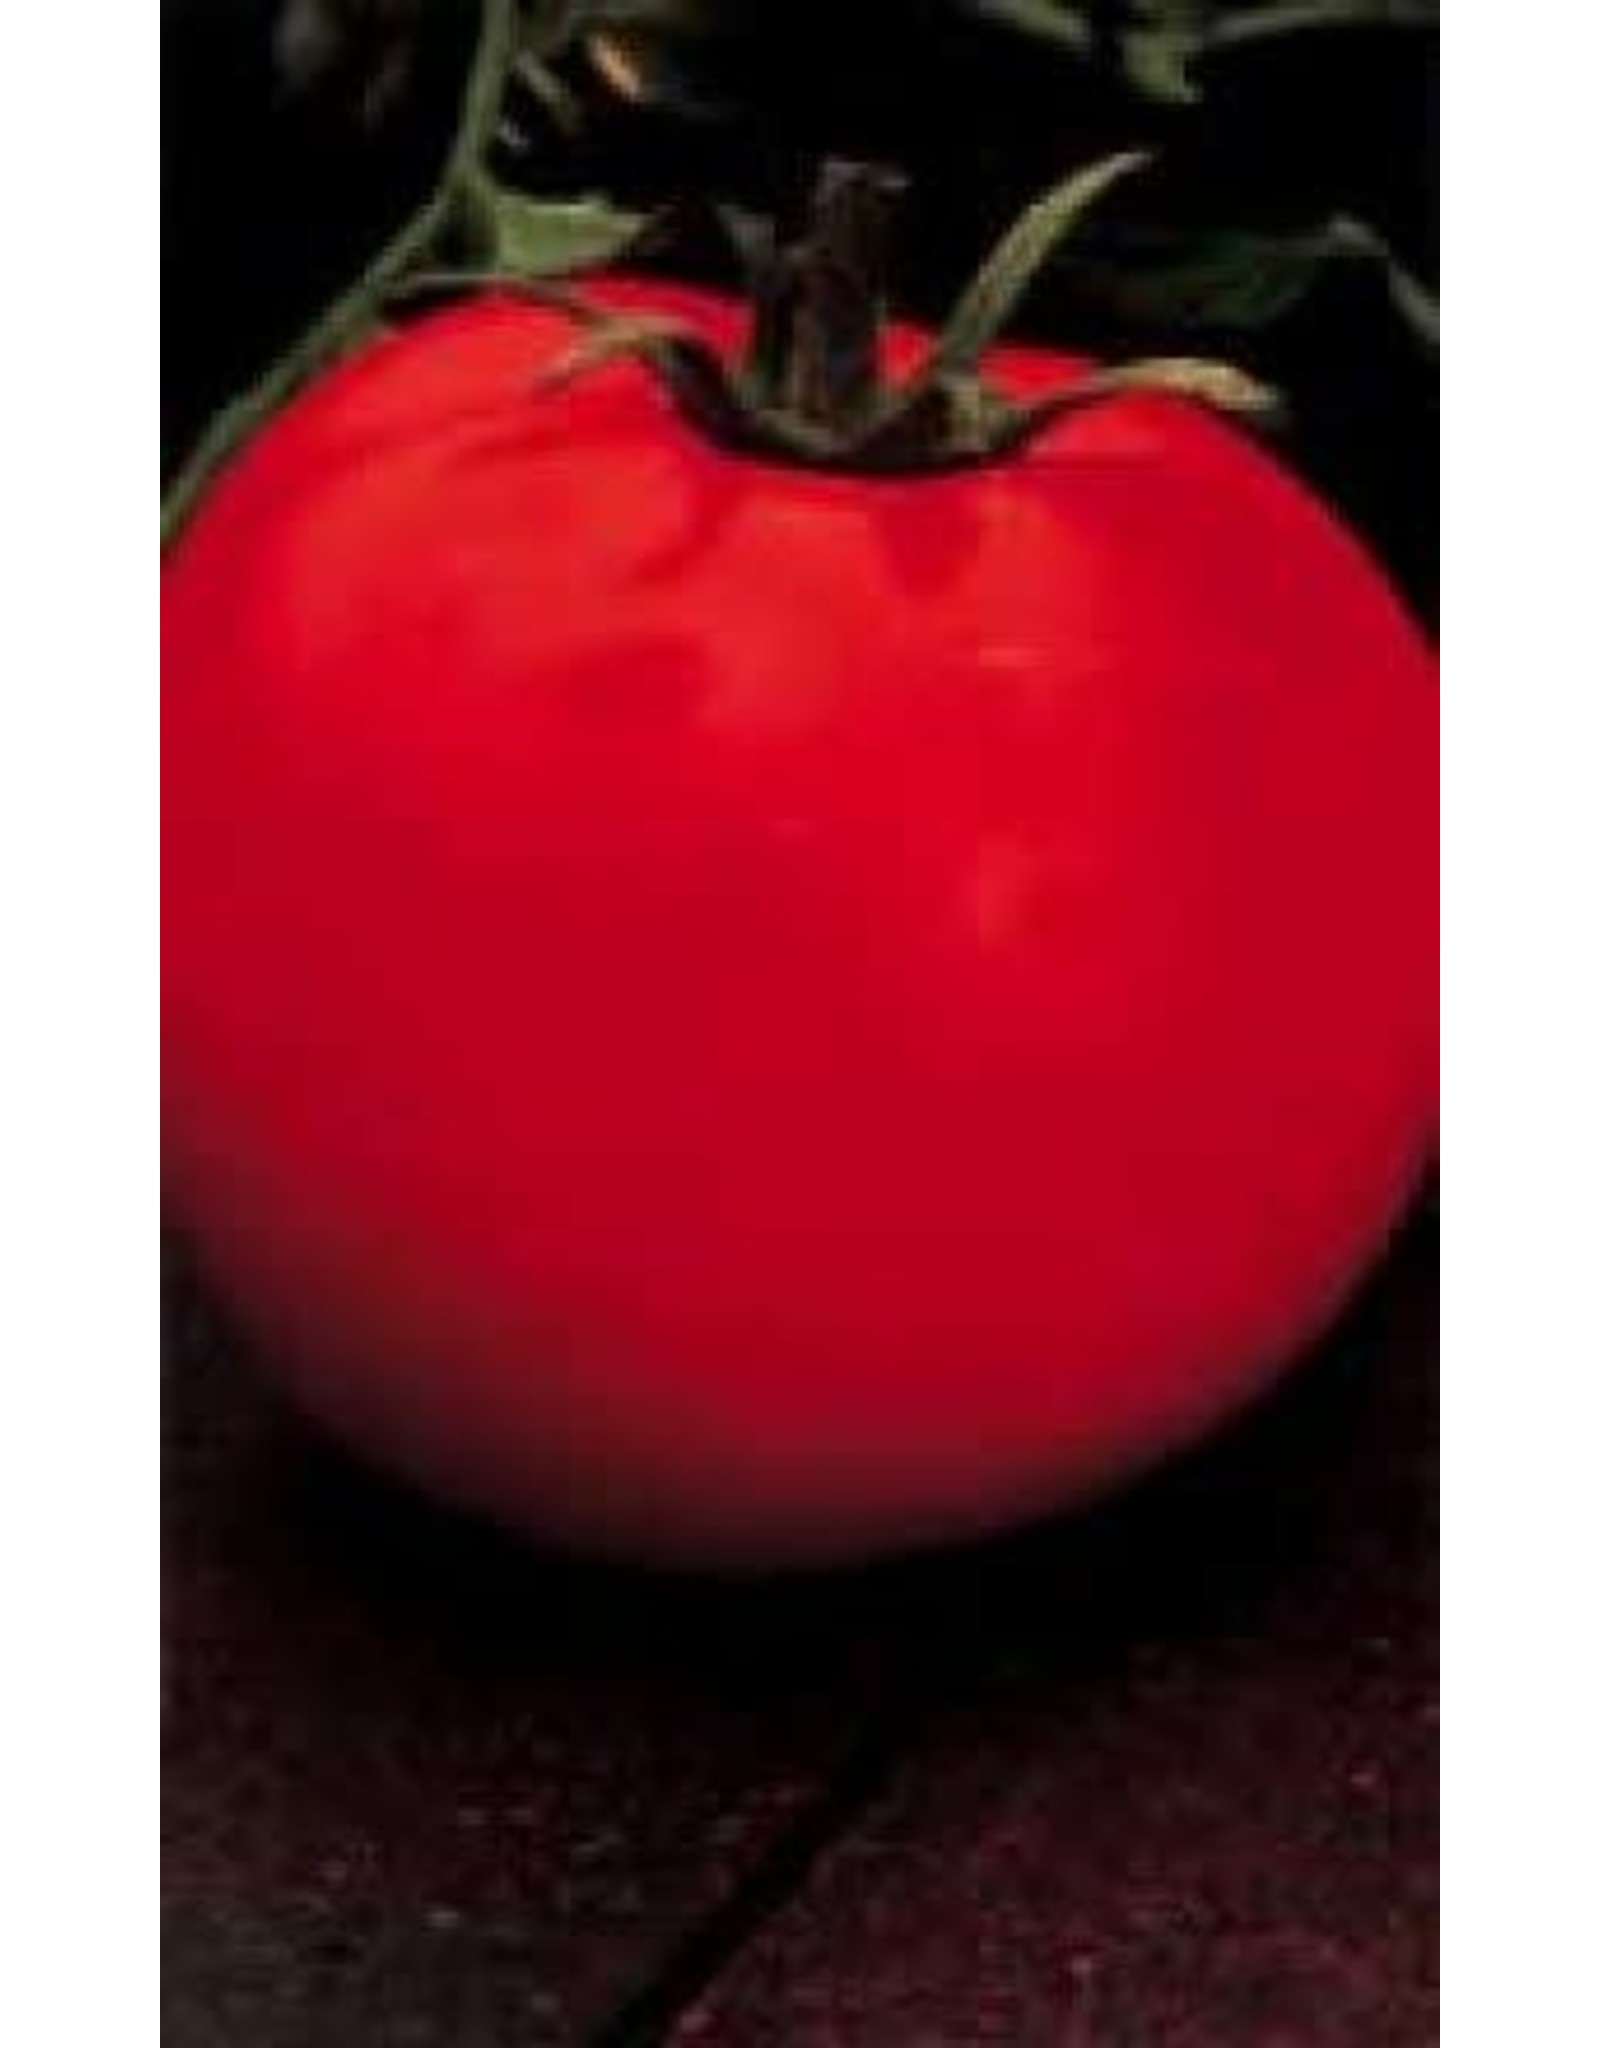 Celebrity Hybrid Tomato Seeds (Bush Type) 2315